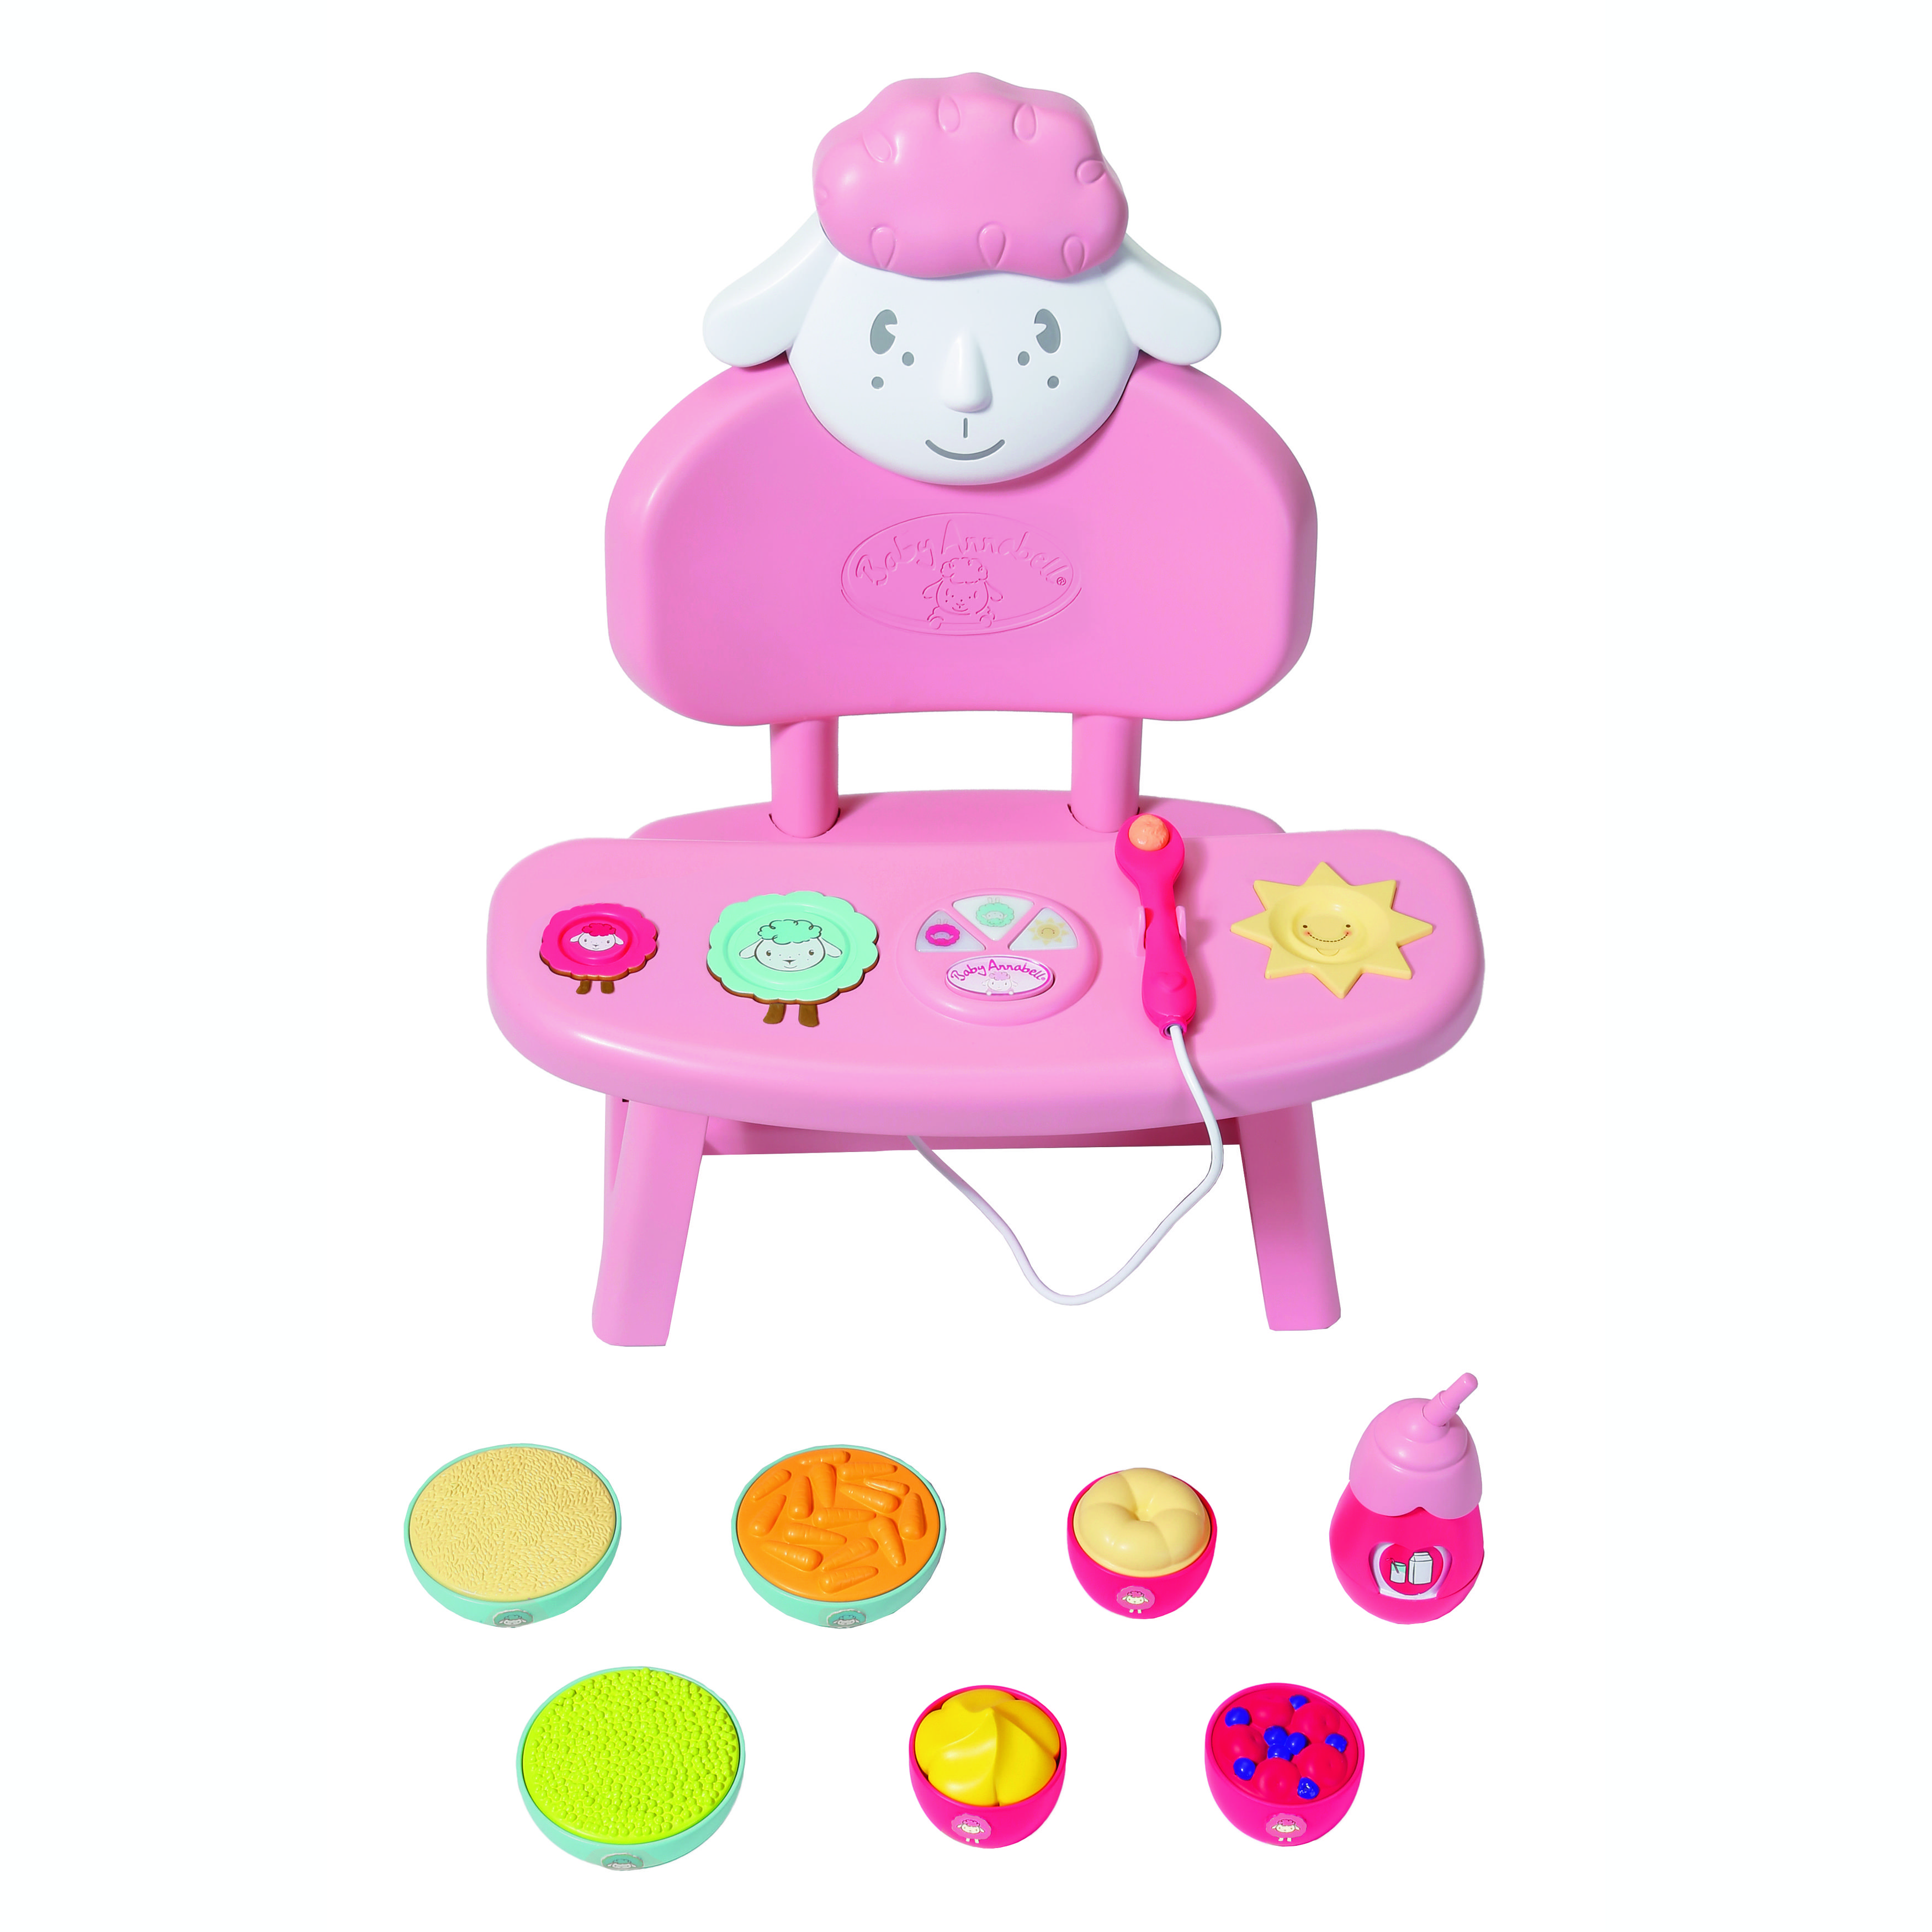 Baby Annabell Frokostbord